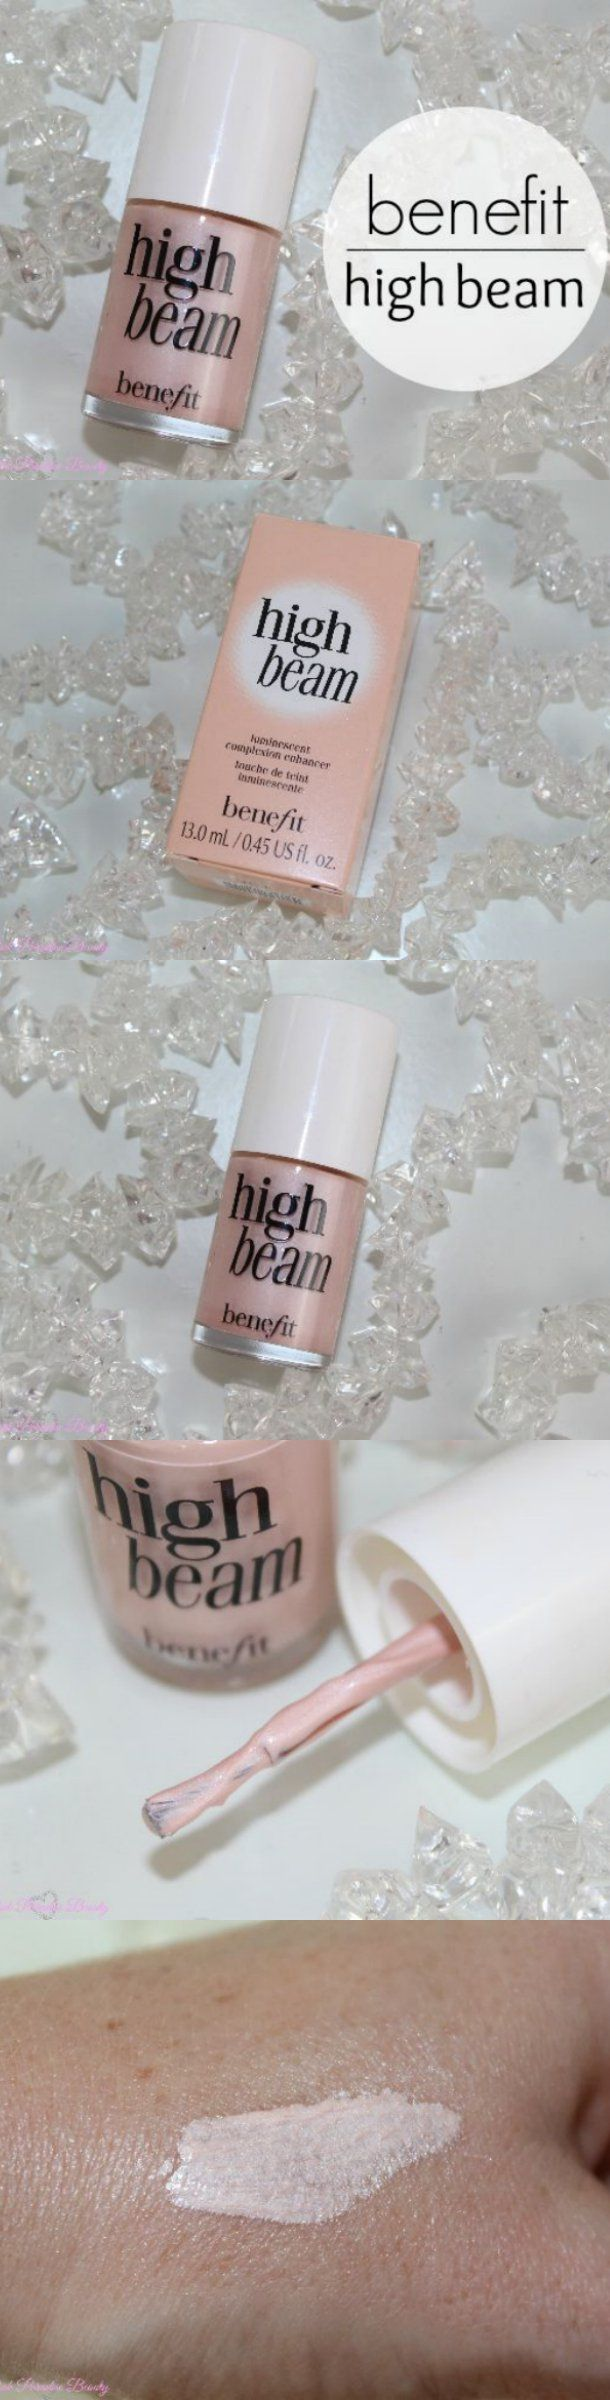 Benefit High Beam Review and Photos http://pinkparadisebeauty.blogspot.co.uk/2015/08/benefit-high-beam-review-and-photos.html